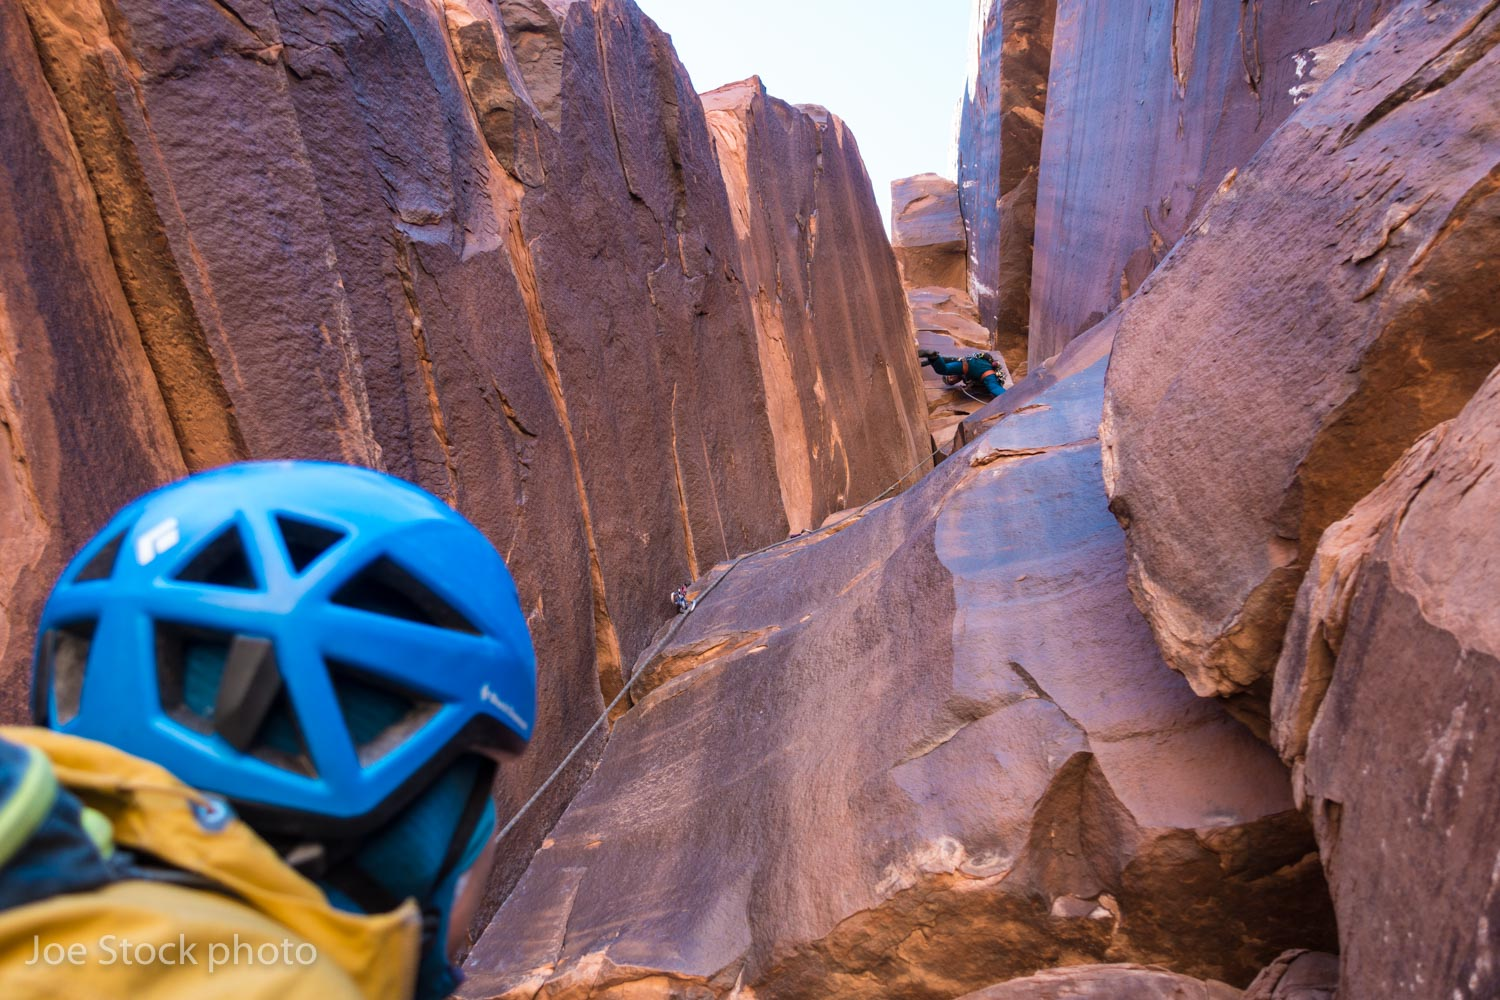 Our Anchorage buddy Elliot Gaddy leading the crux crotch-stretcher on Lonely Vigil, Lighthouse Tower, a five-pitch 5.10+.